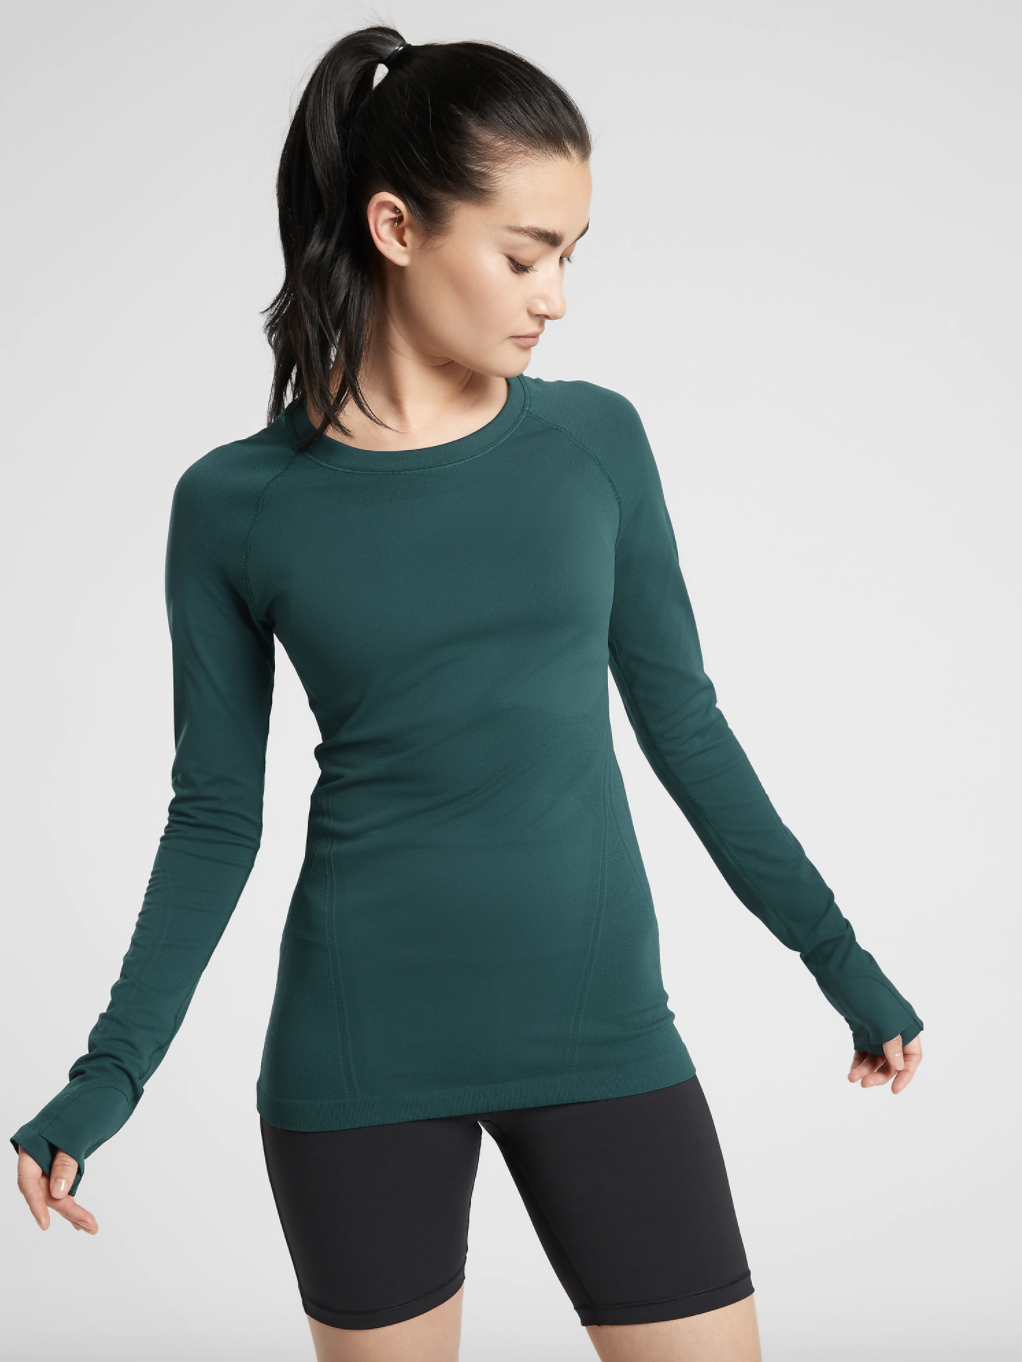 A model wearing the crew-neck top, which has thumb holes in the extra-long sleeves